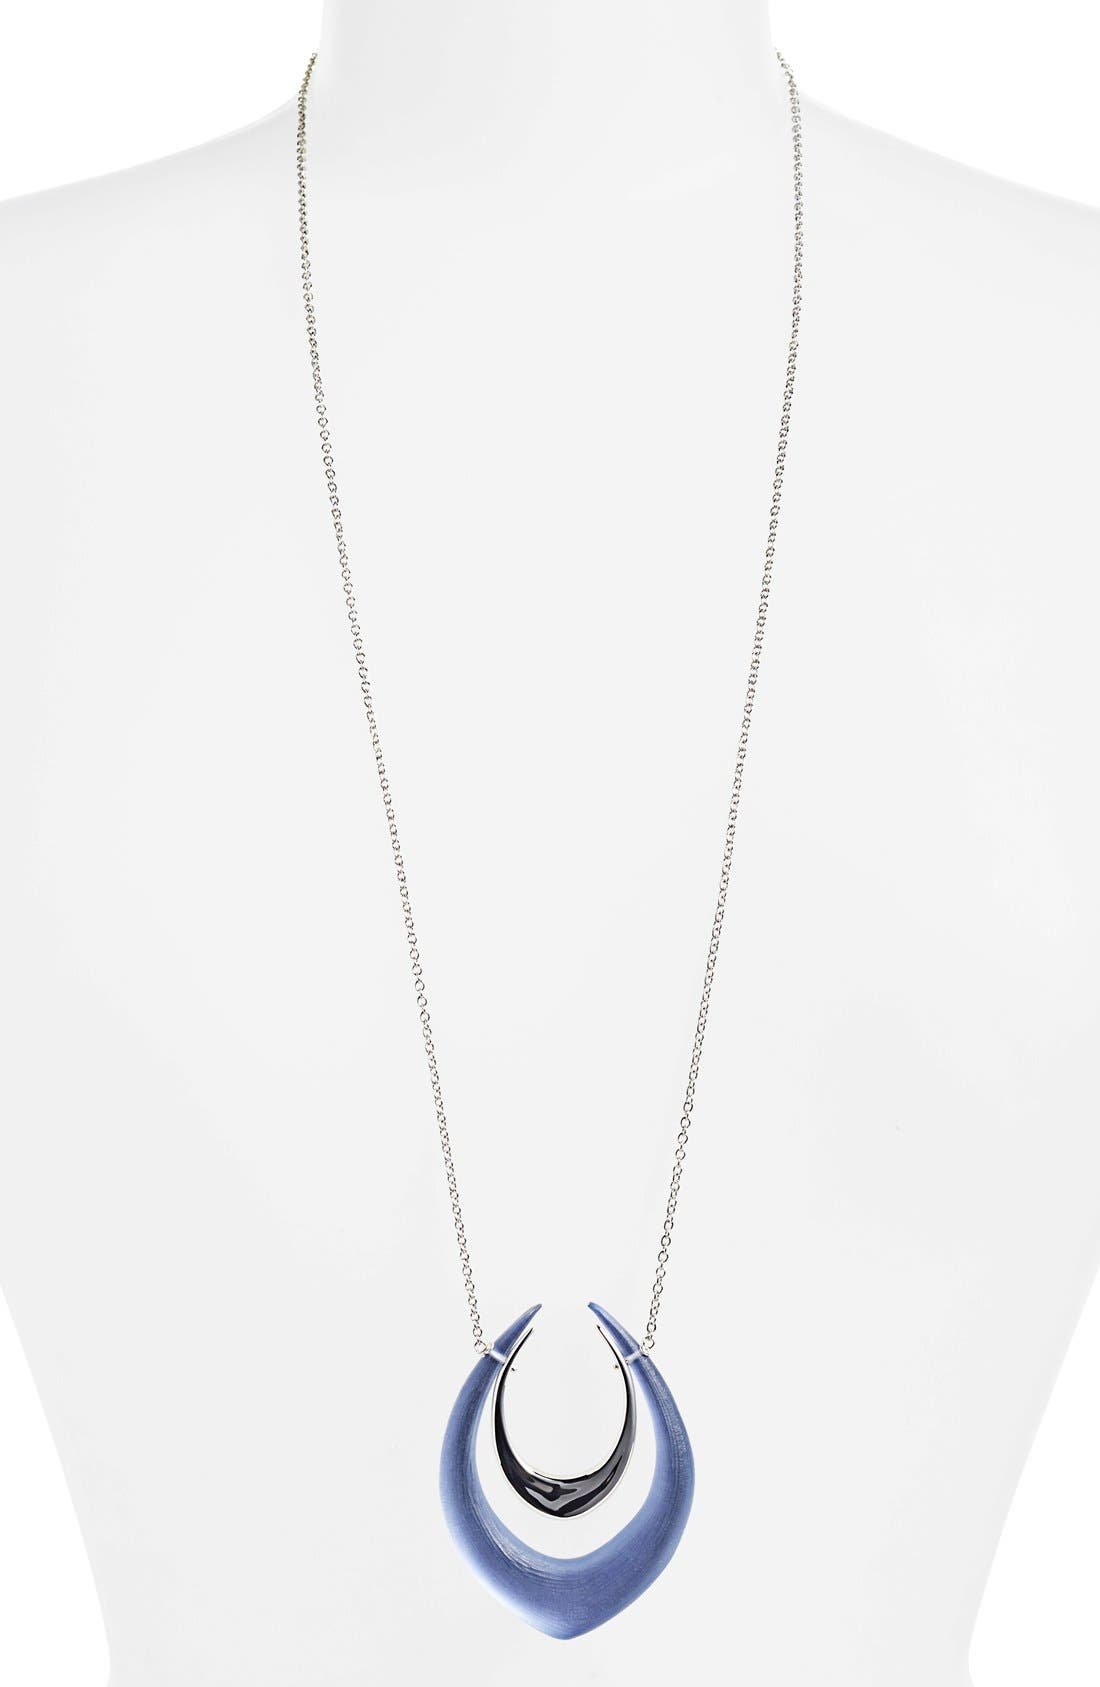 Main Image - Alexis Bittar 'Lucite® - Neon Deco' Long Pendant Necklace